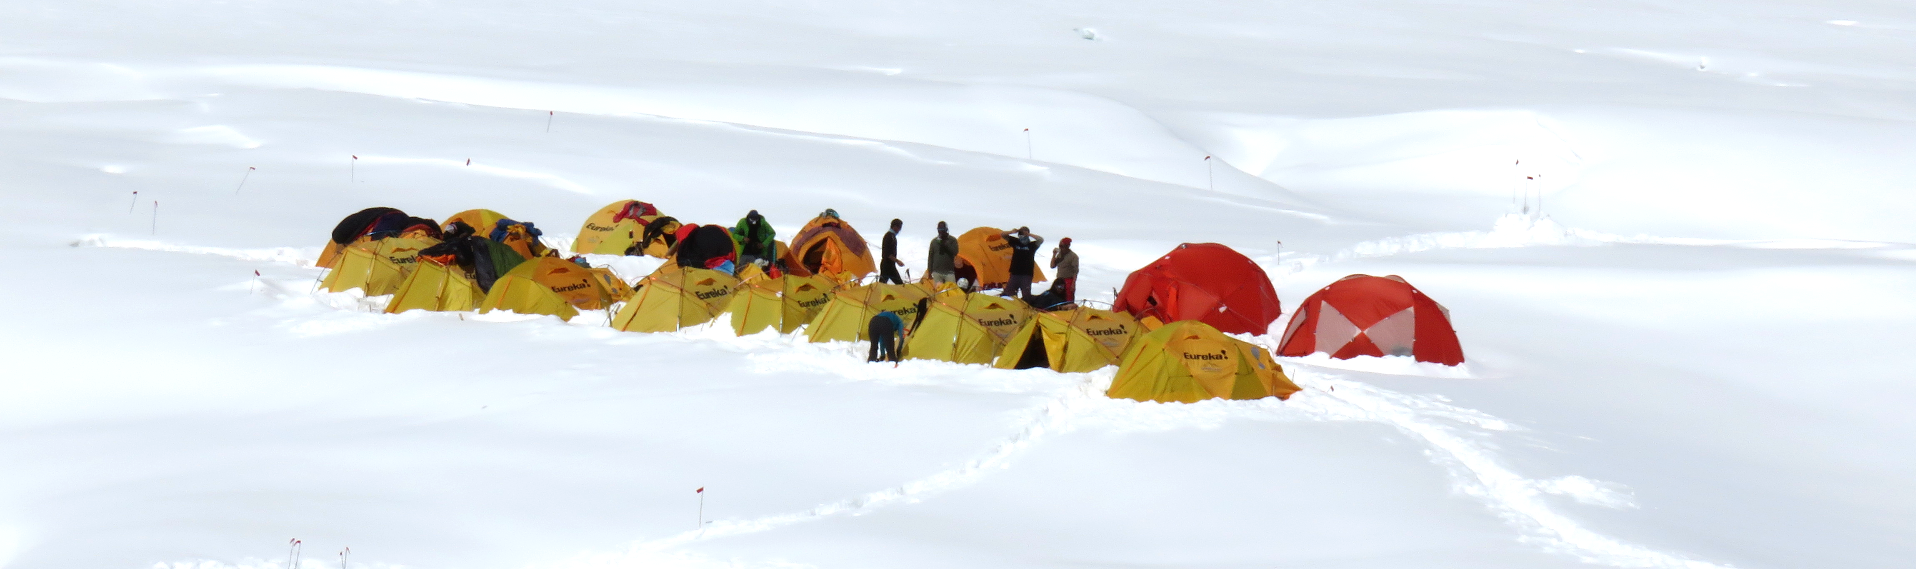 Camp One on Mt. Everest